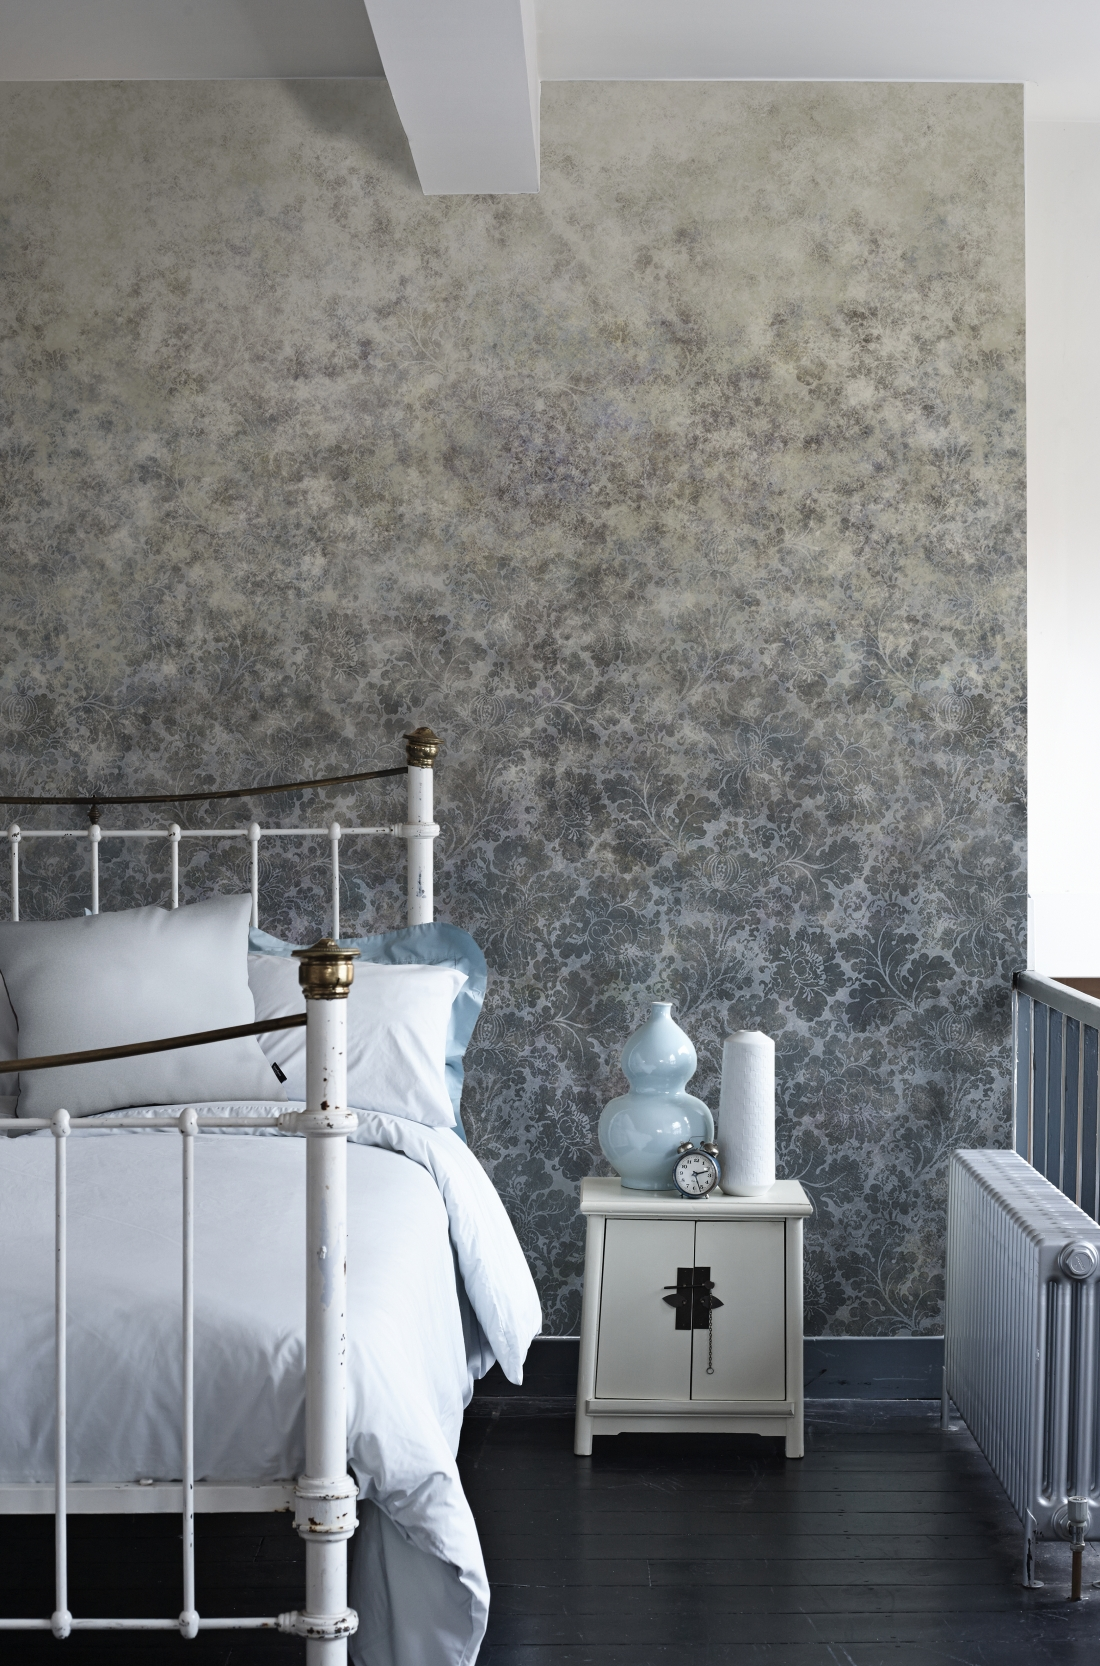 VACranford Damask Petrol Blue Wallpaper Mural from the V&A Collection at Surface View Wallpaper Murals